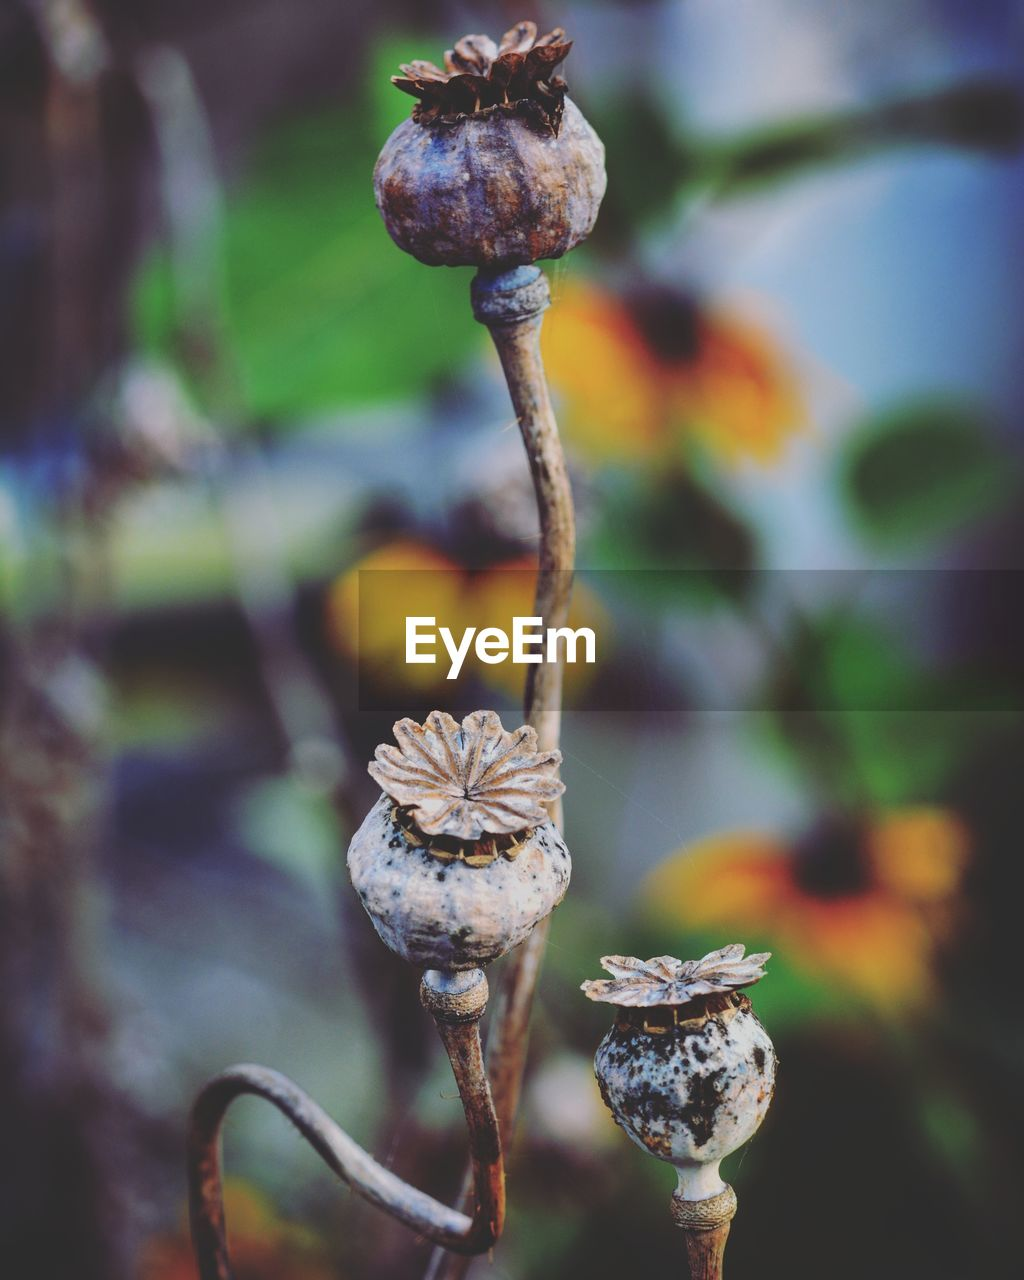 plant, close-up, focus on foreground, growth, beauty in nature, nature, flower, no people, vulnerability, flowering plant, day, fragility, freshness, outdoors, plant stem, tranquility, selective focus, poppy seed, beginnings, seed